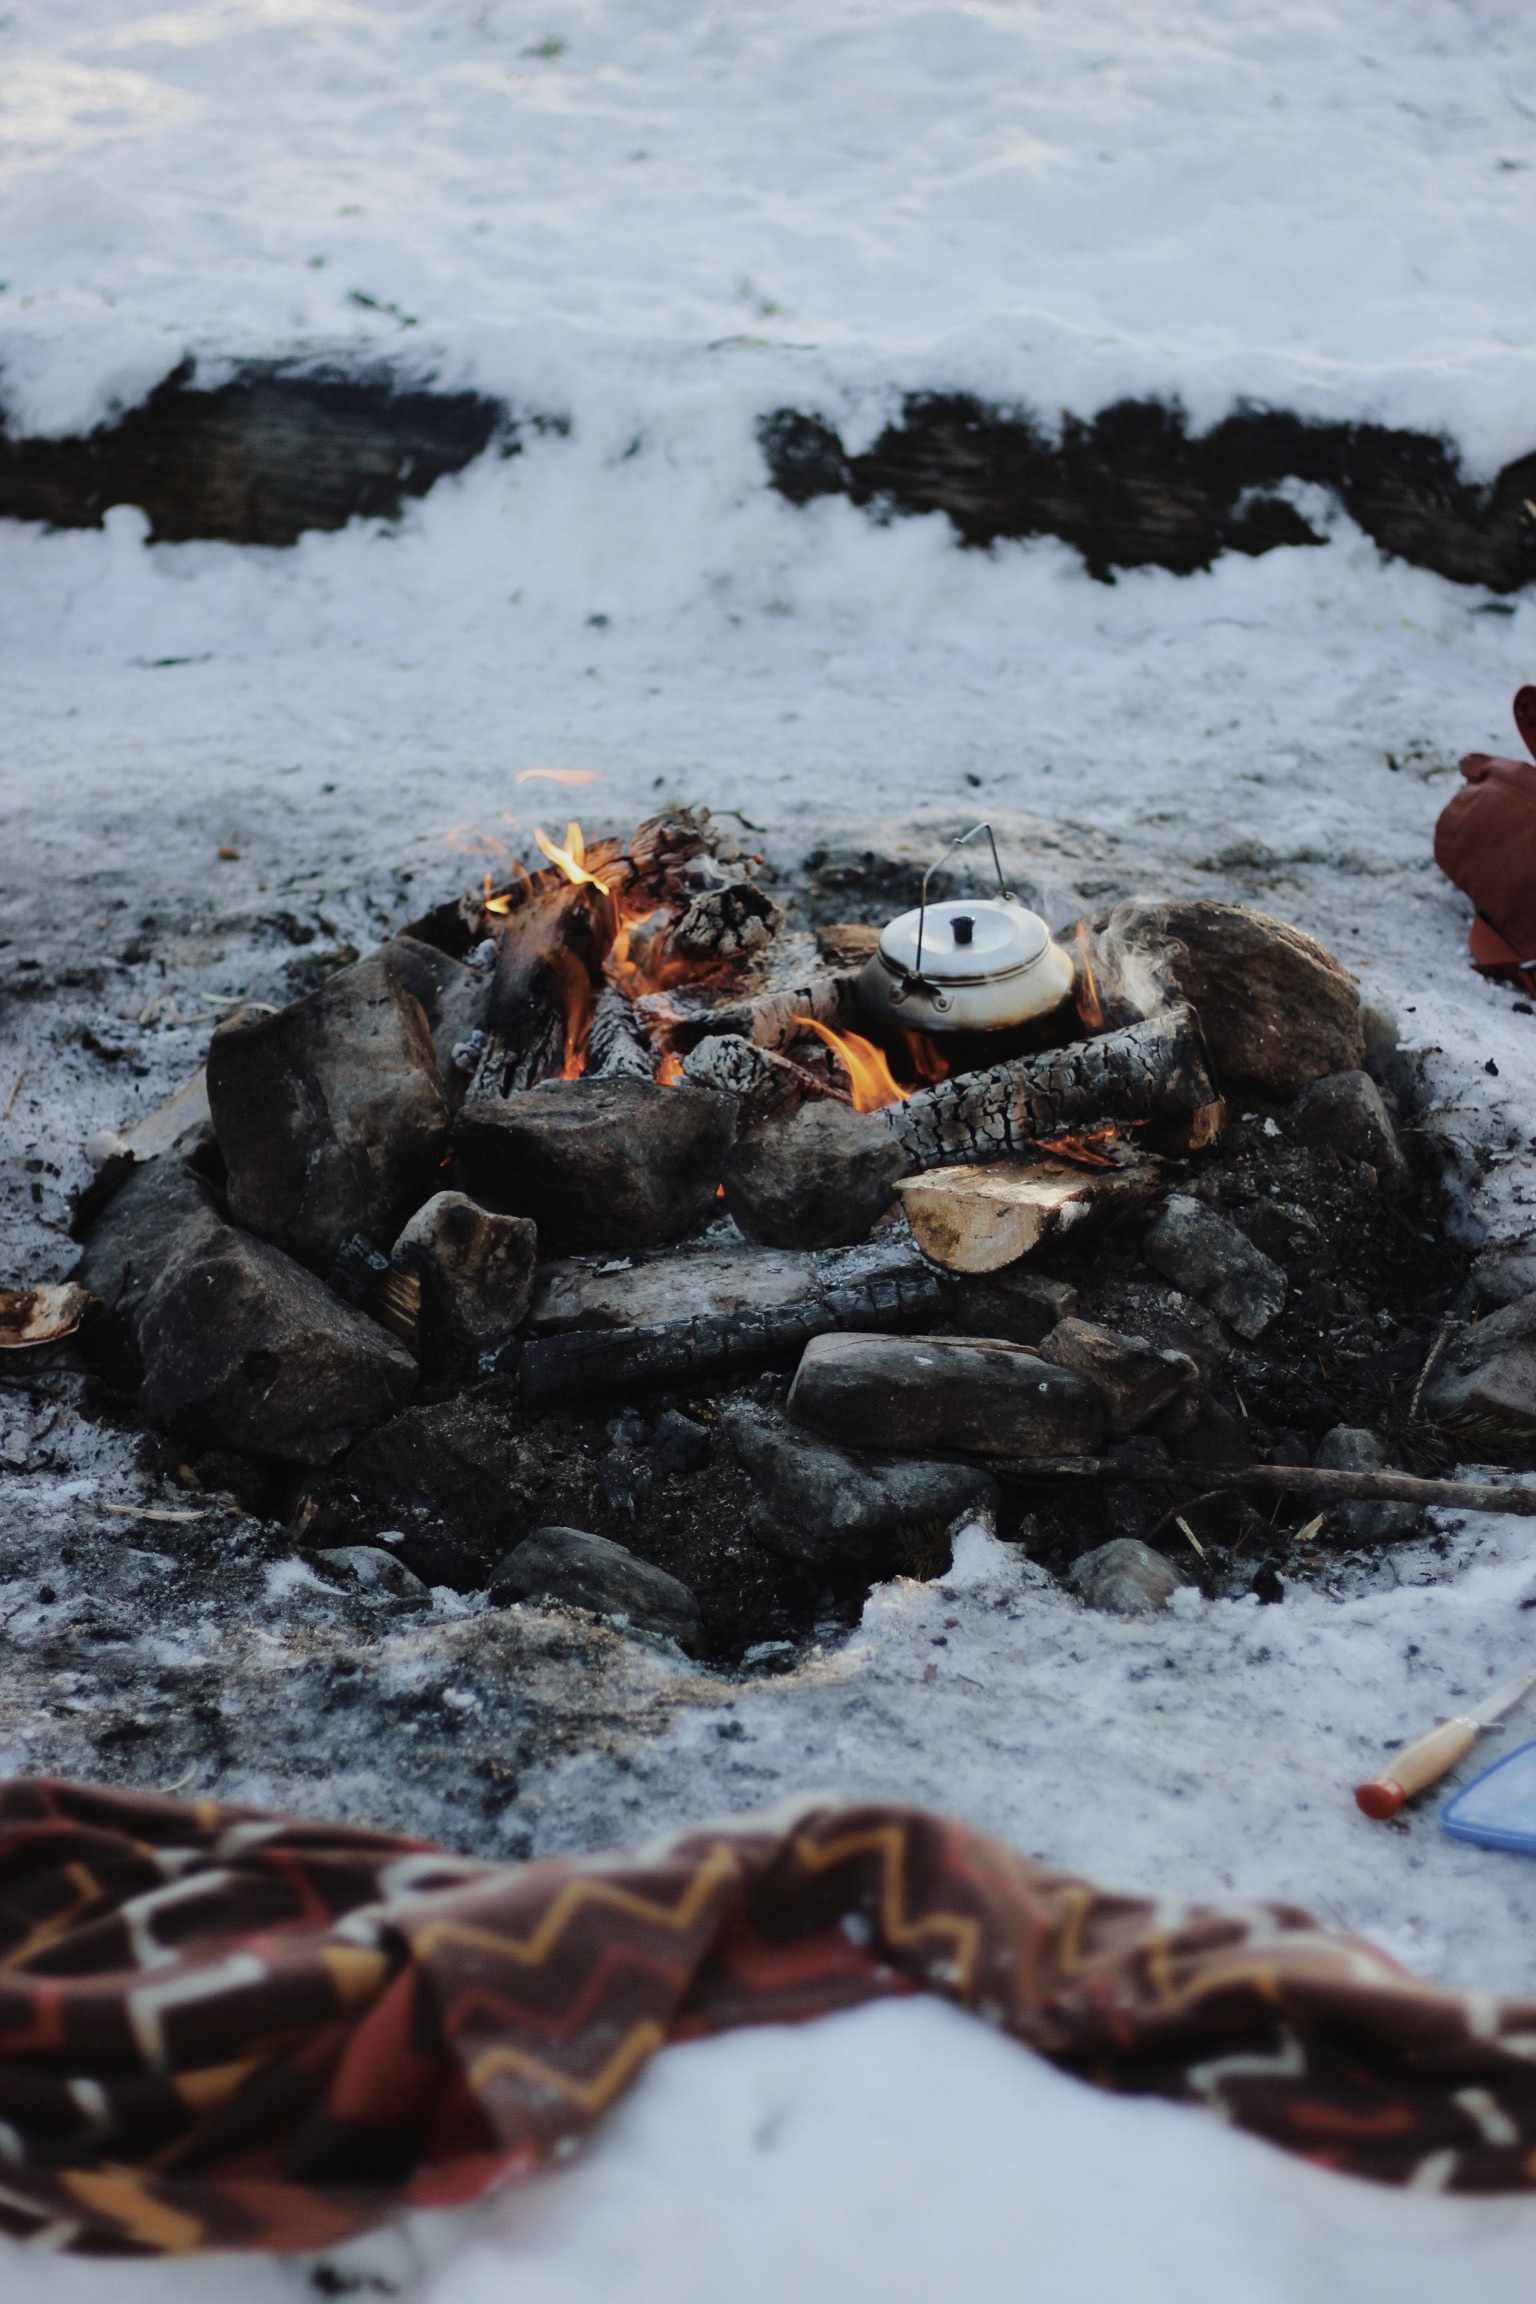 Cooking on a fire outside in the snow, Finnish Lapland